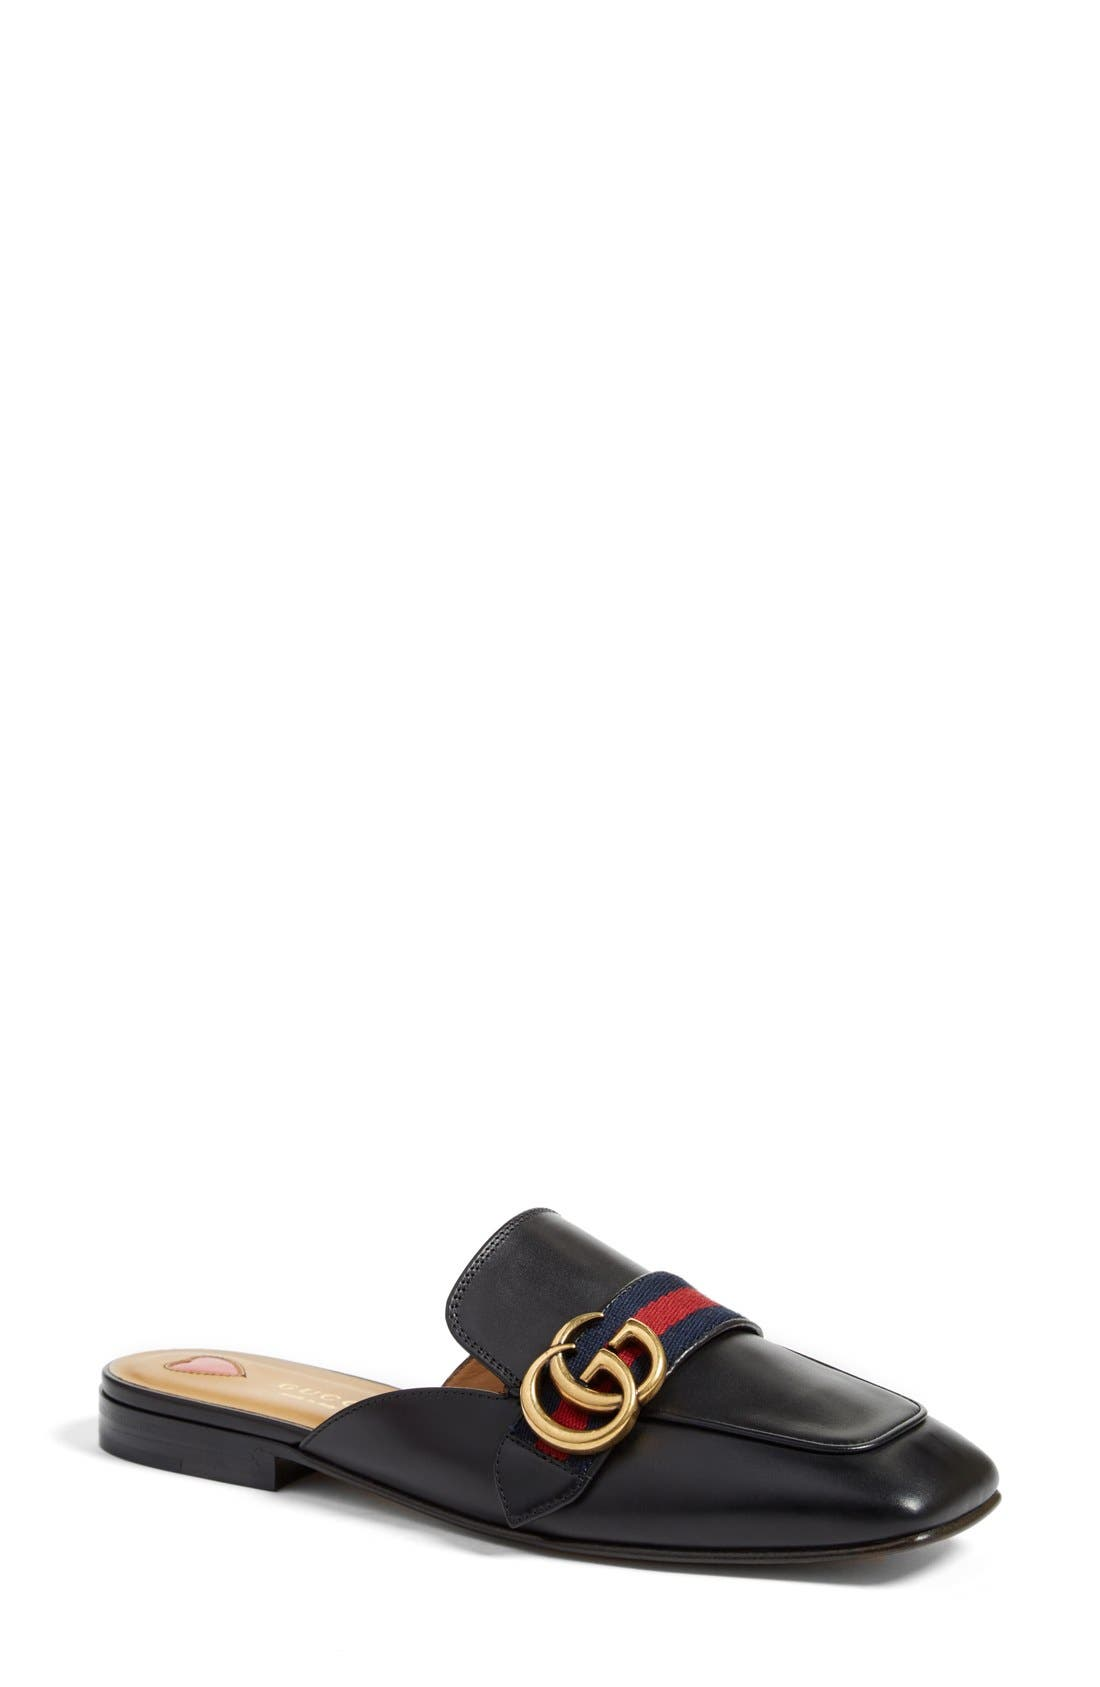 GUCCI, Loafer Mule, Main thumbnail 1, color, BLACK LEATHER